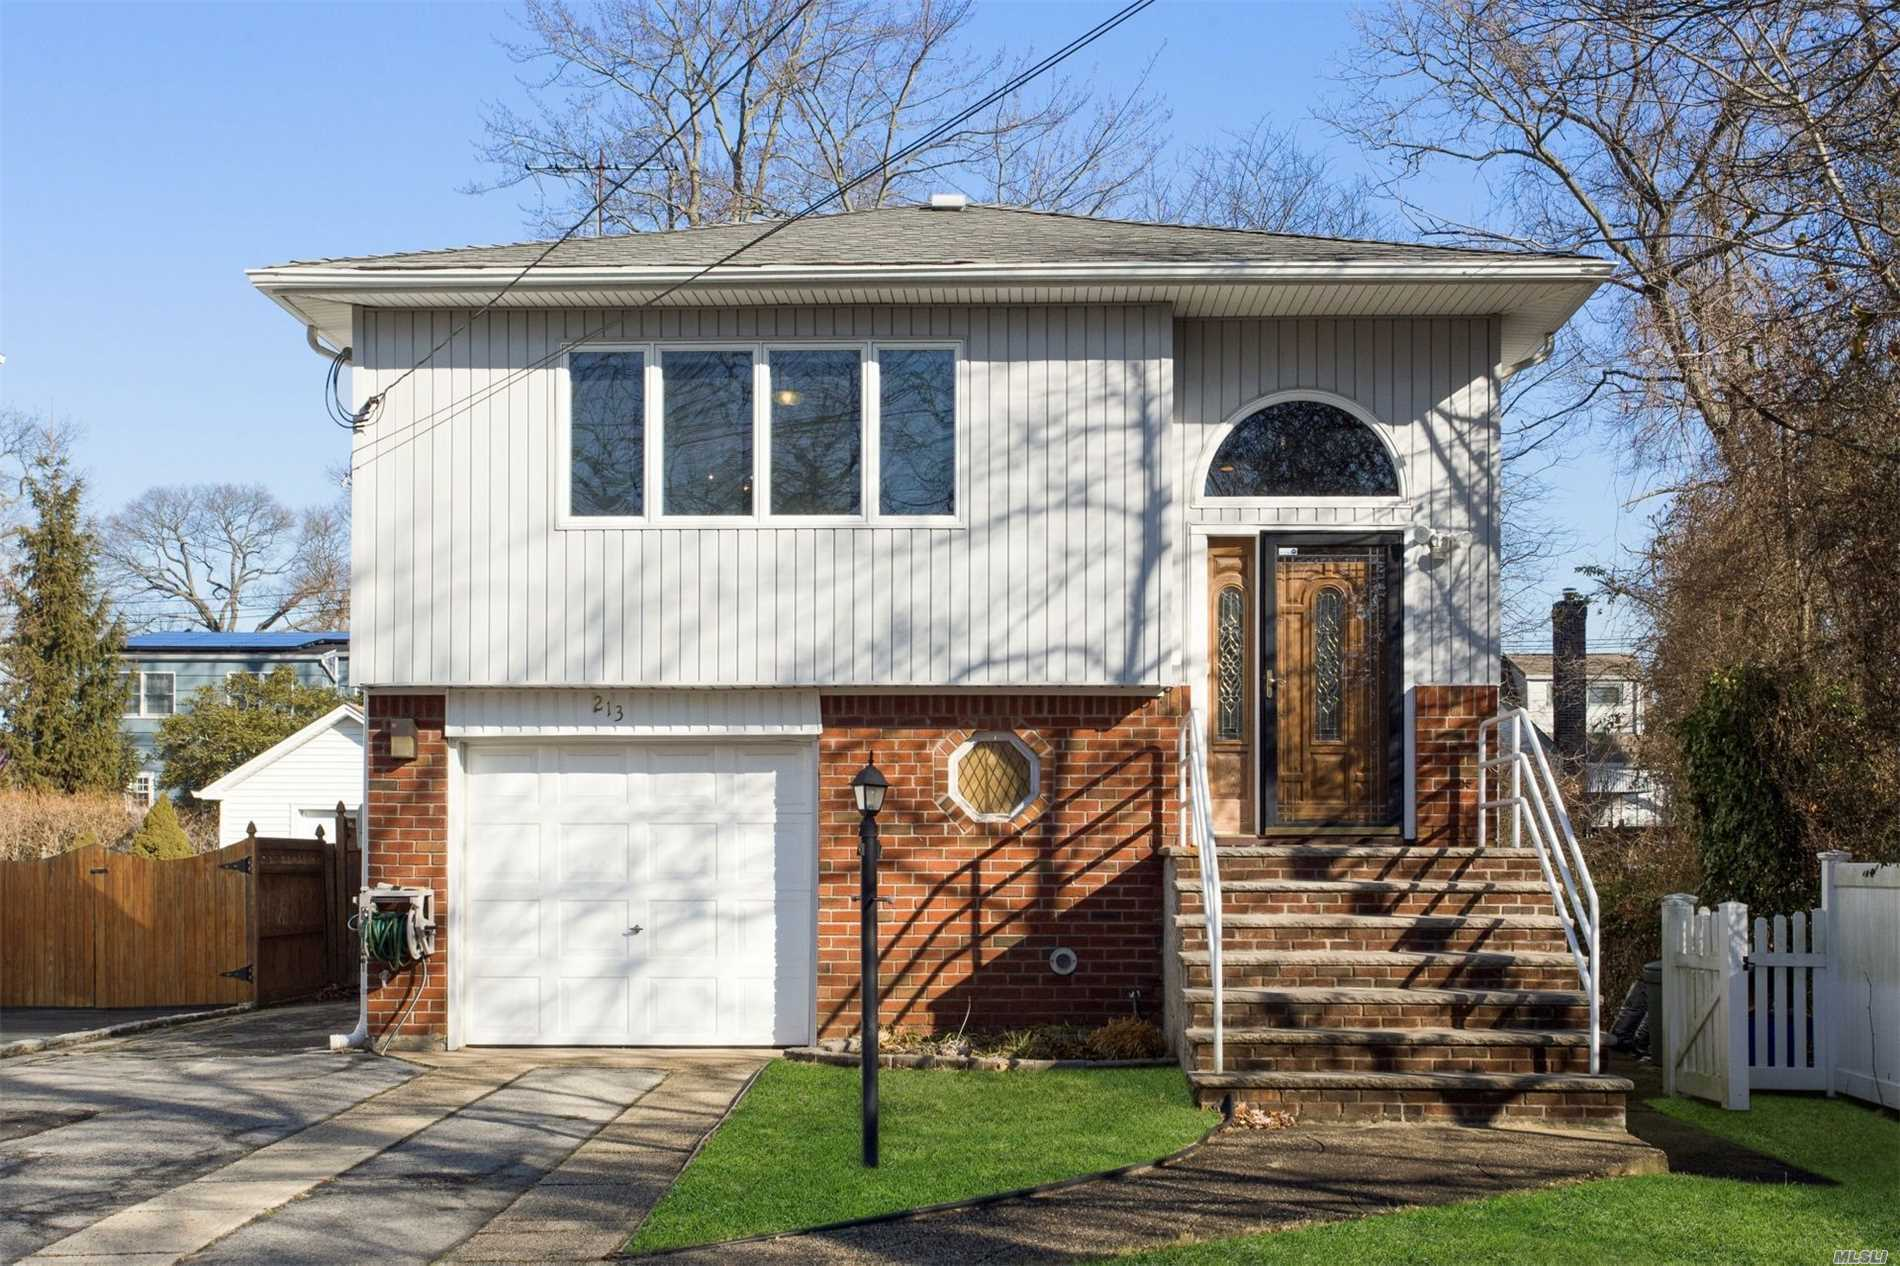 Desirable Location, Spacious Home, Comfortable Living Spaces! Situated In Valley Stream's Westwood Section, Blocks From The Lirr And Firemen's Field, This Home Is On A Peaceful Cut-De-Sac. Renovated Bathrooms And Kitchen, Family Room, Central Air Conditioning And More!